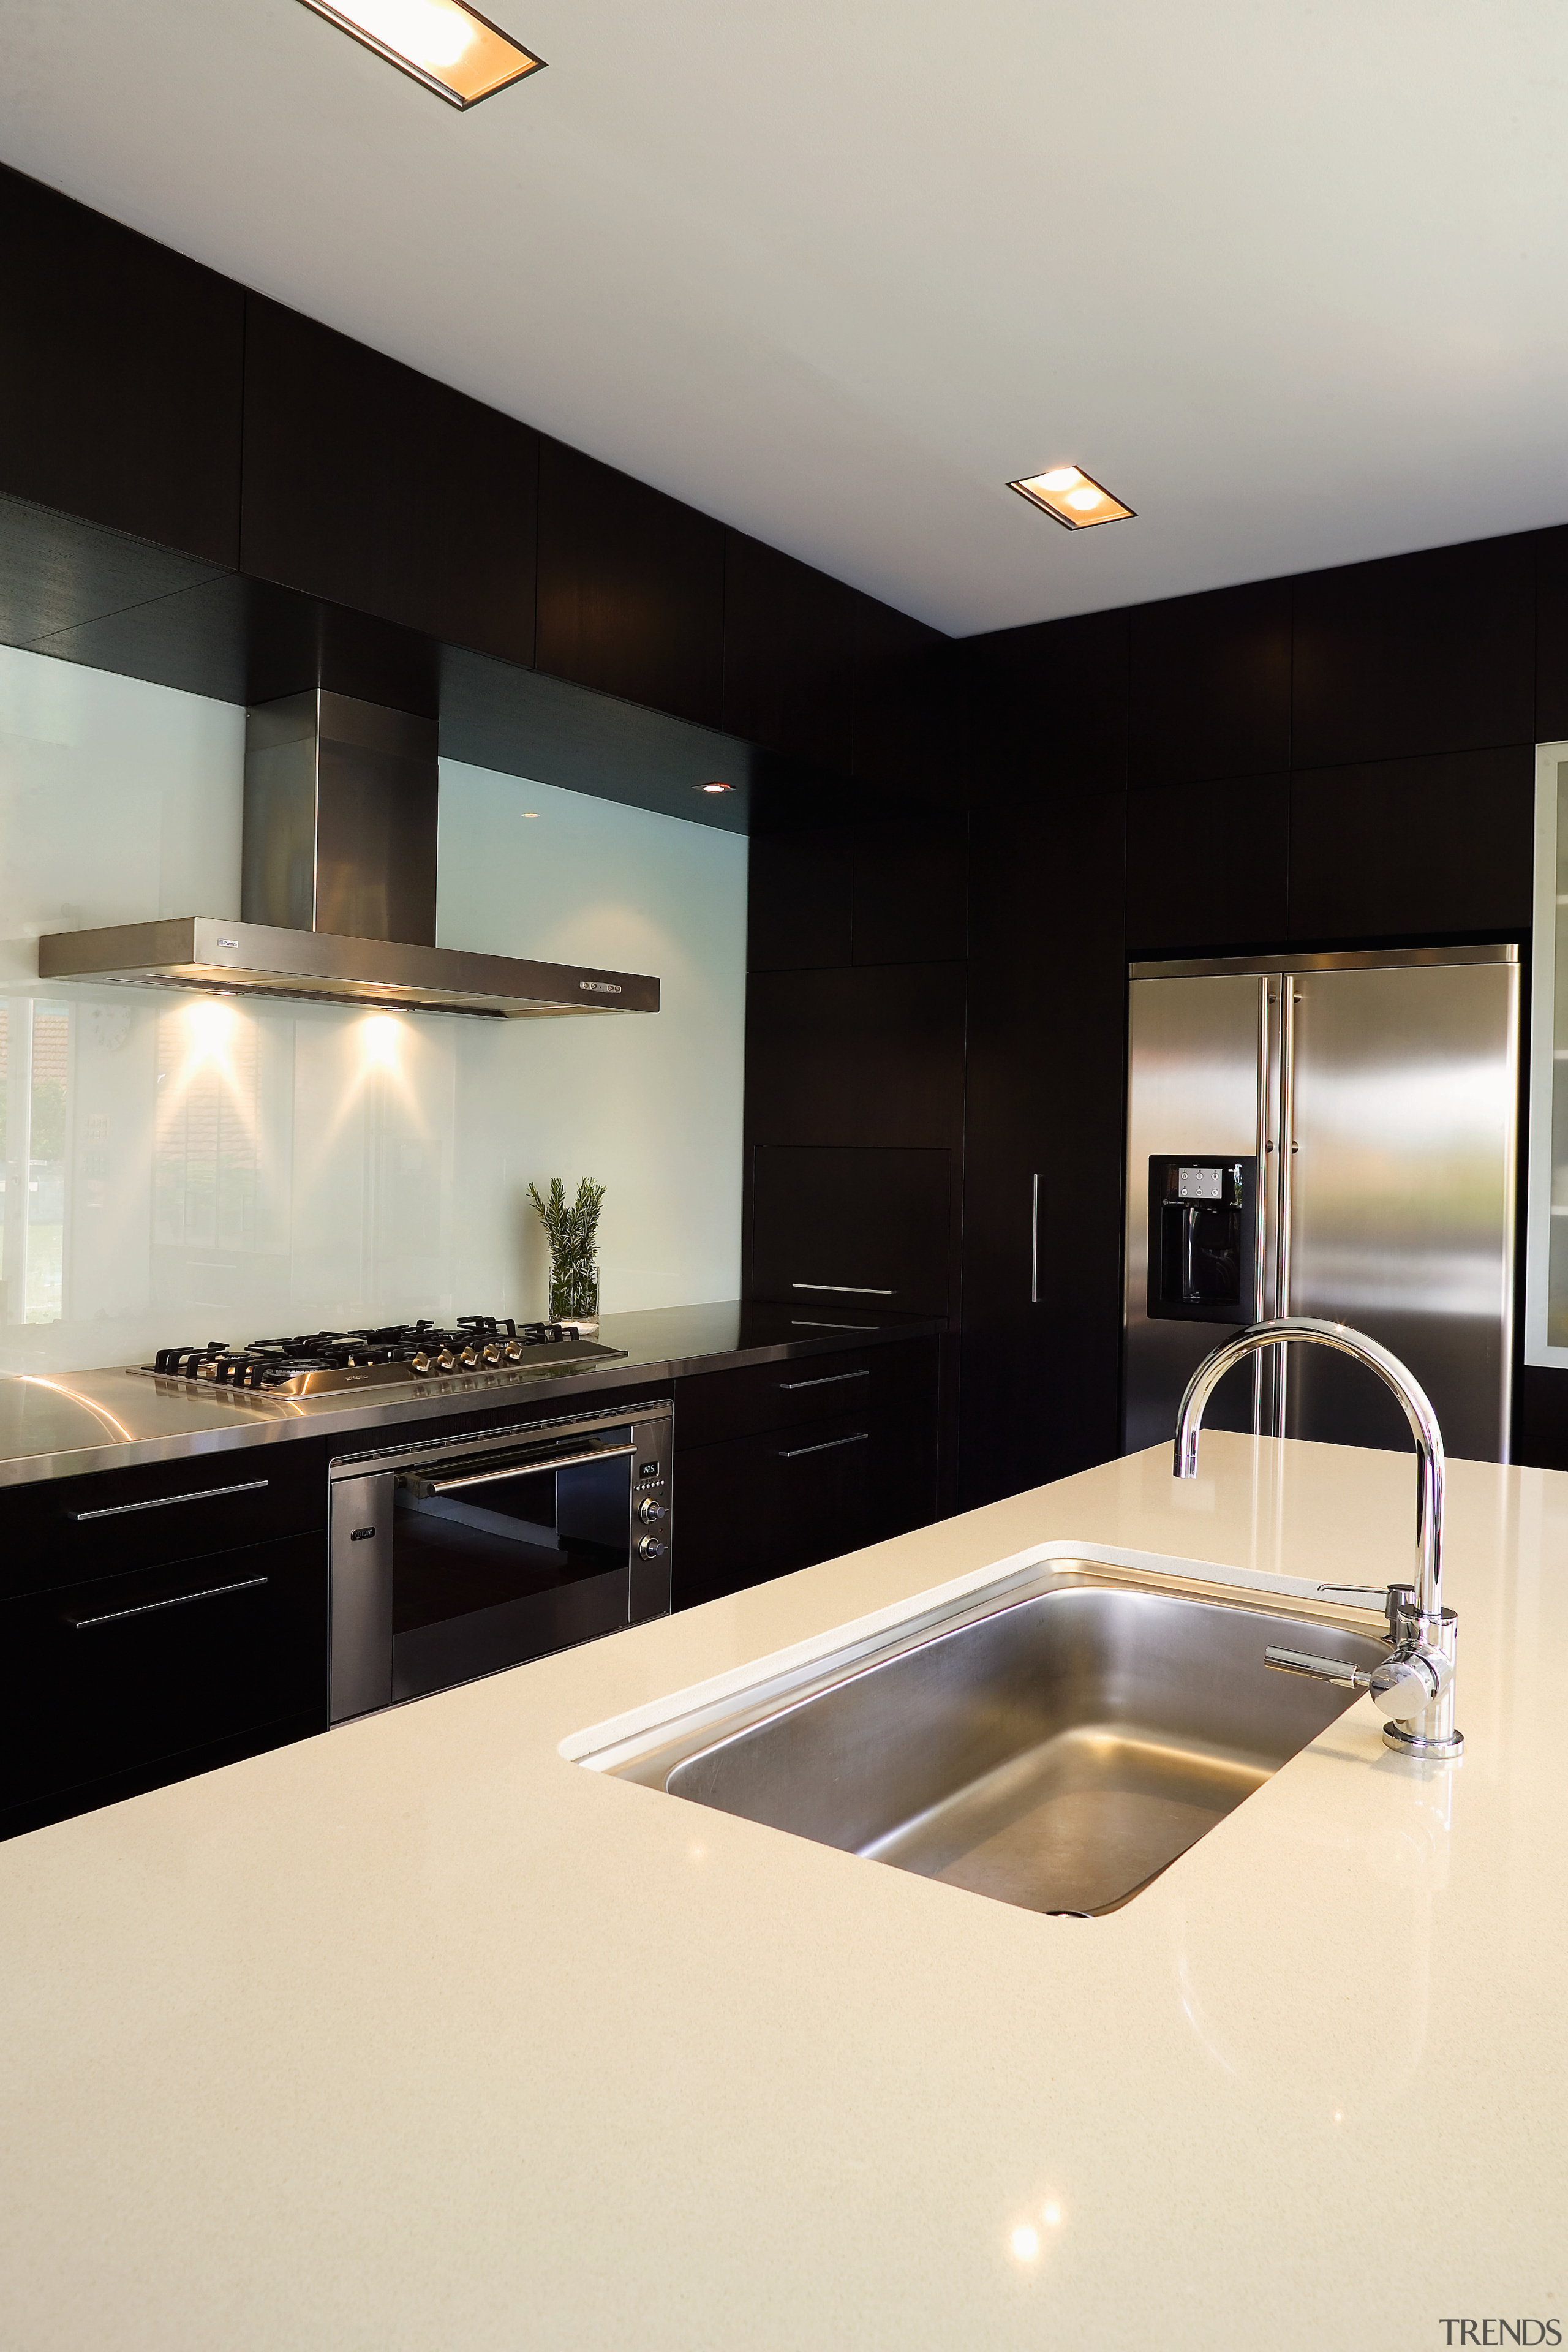 A view of athis kitchen featuring mahogany and countertop, interior design, kitchen, room, sink, white, black